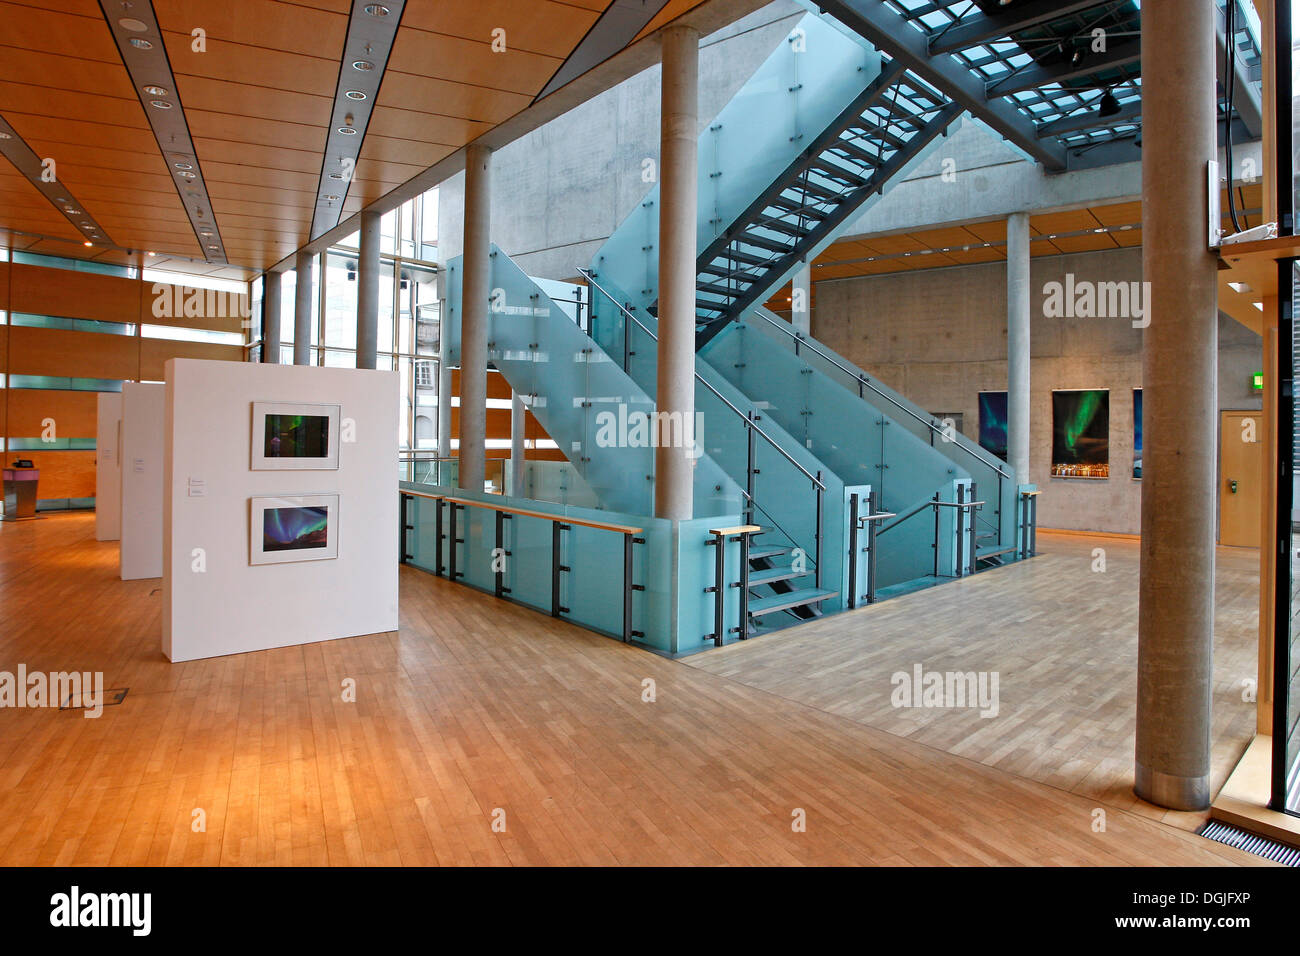 Lobby of the embassies of the Nordic countries, Denmark, Sweden, Norway, Finland, and Iceland, in Berlin - Stock Image